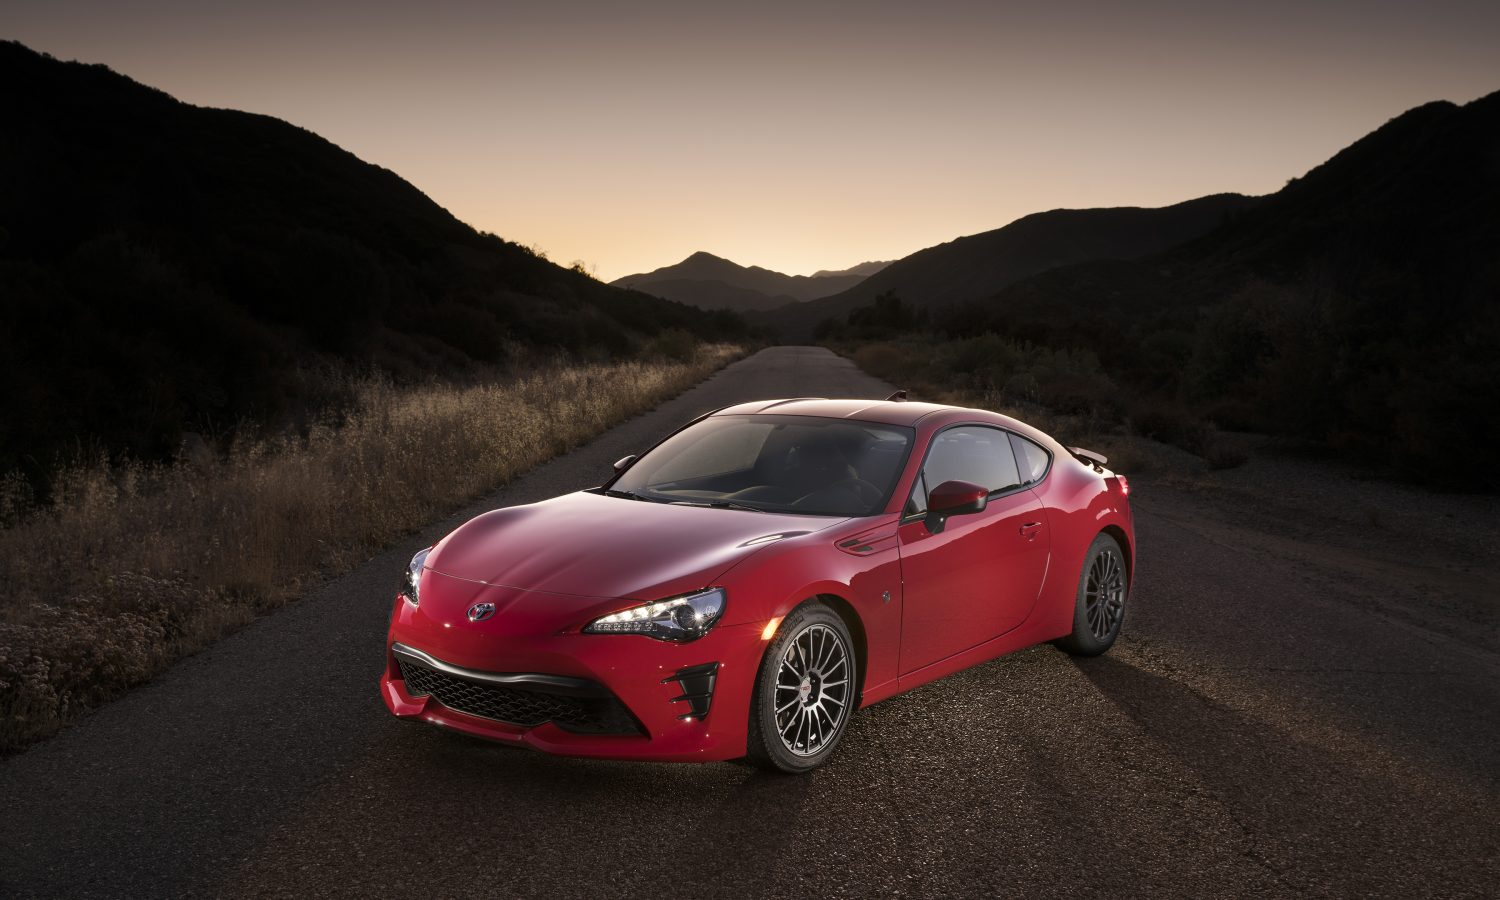 2017 Toyota 86 is the Affordable, Fun-damental Sports Car